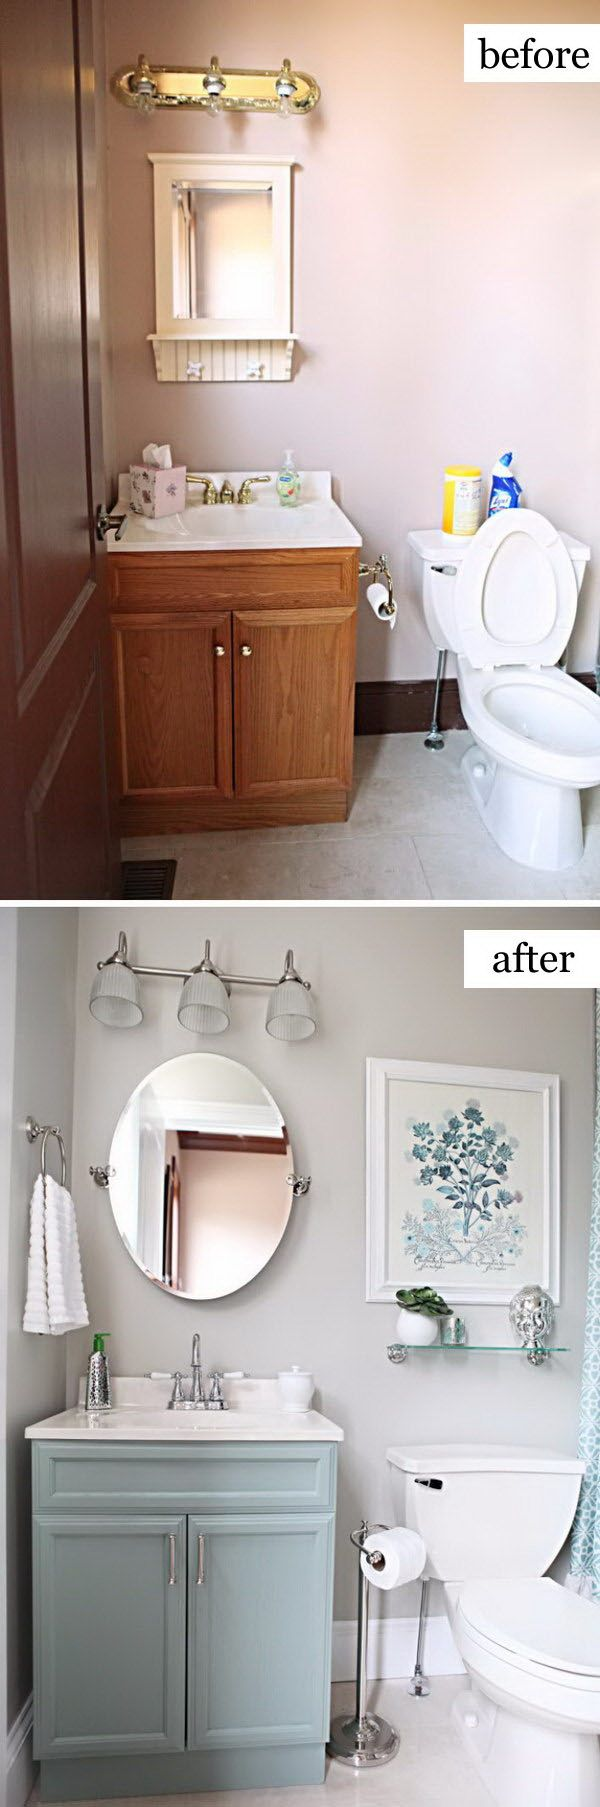 Charming Before And After Makeovers: 23 Most Beautiful Bathroom Remodeling Ideas